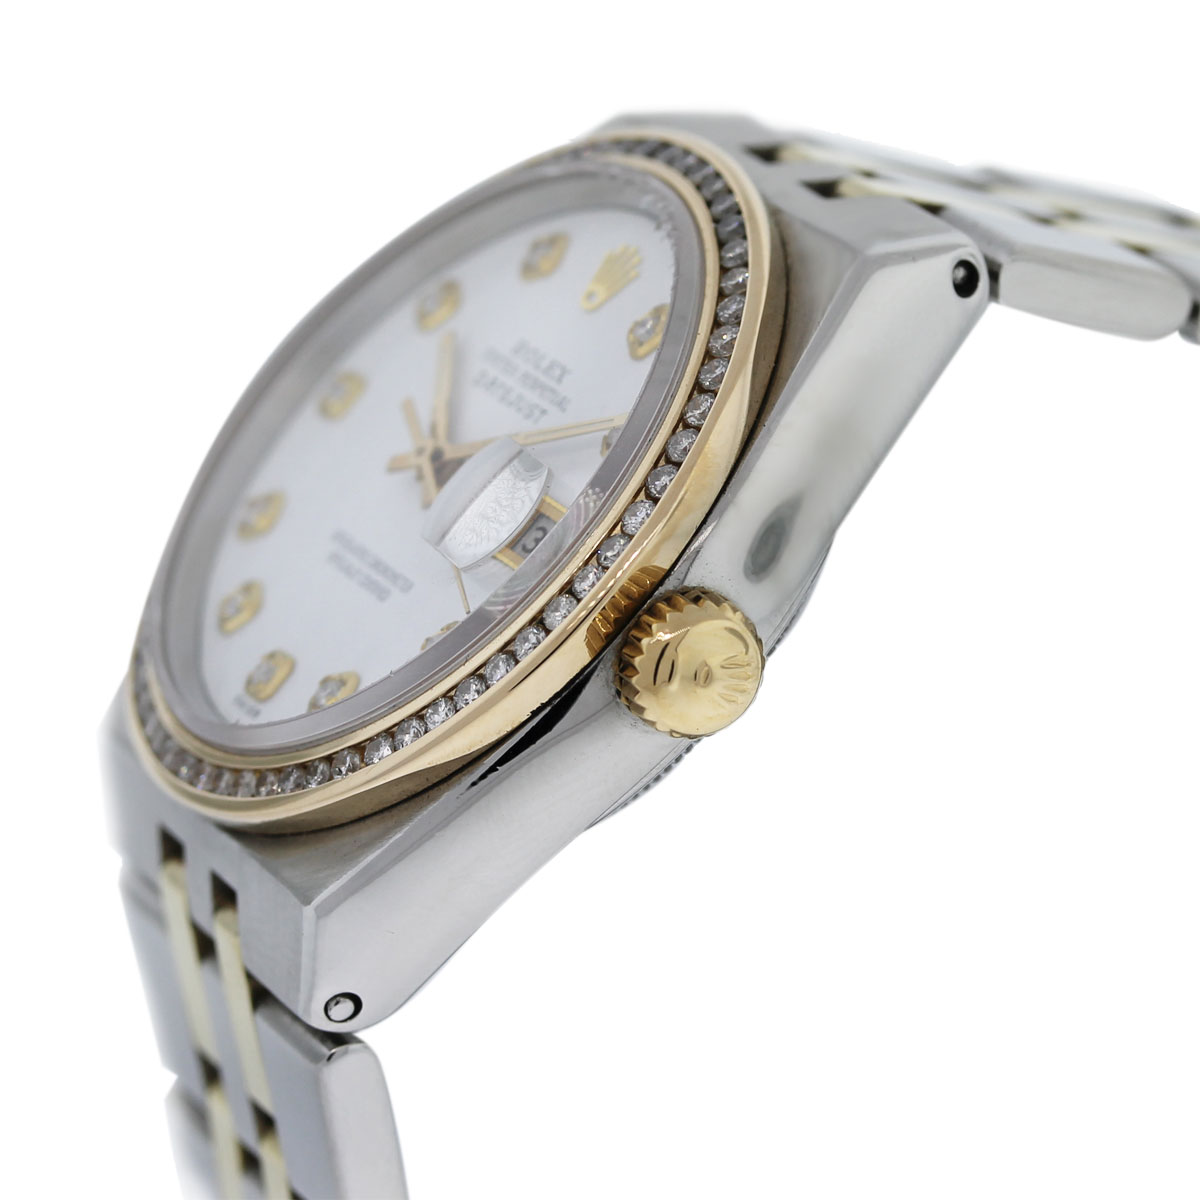 Rolex DateJust 17013 Two Tone White Pyramid Diamond Dial/Bezel Watch crown